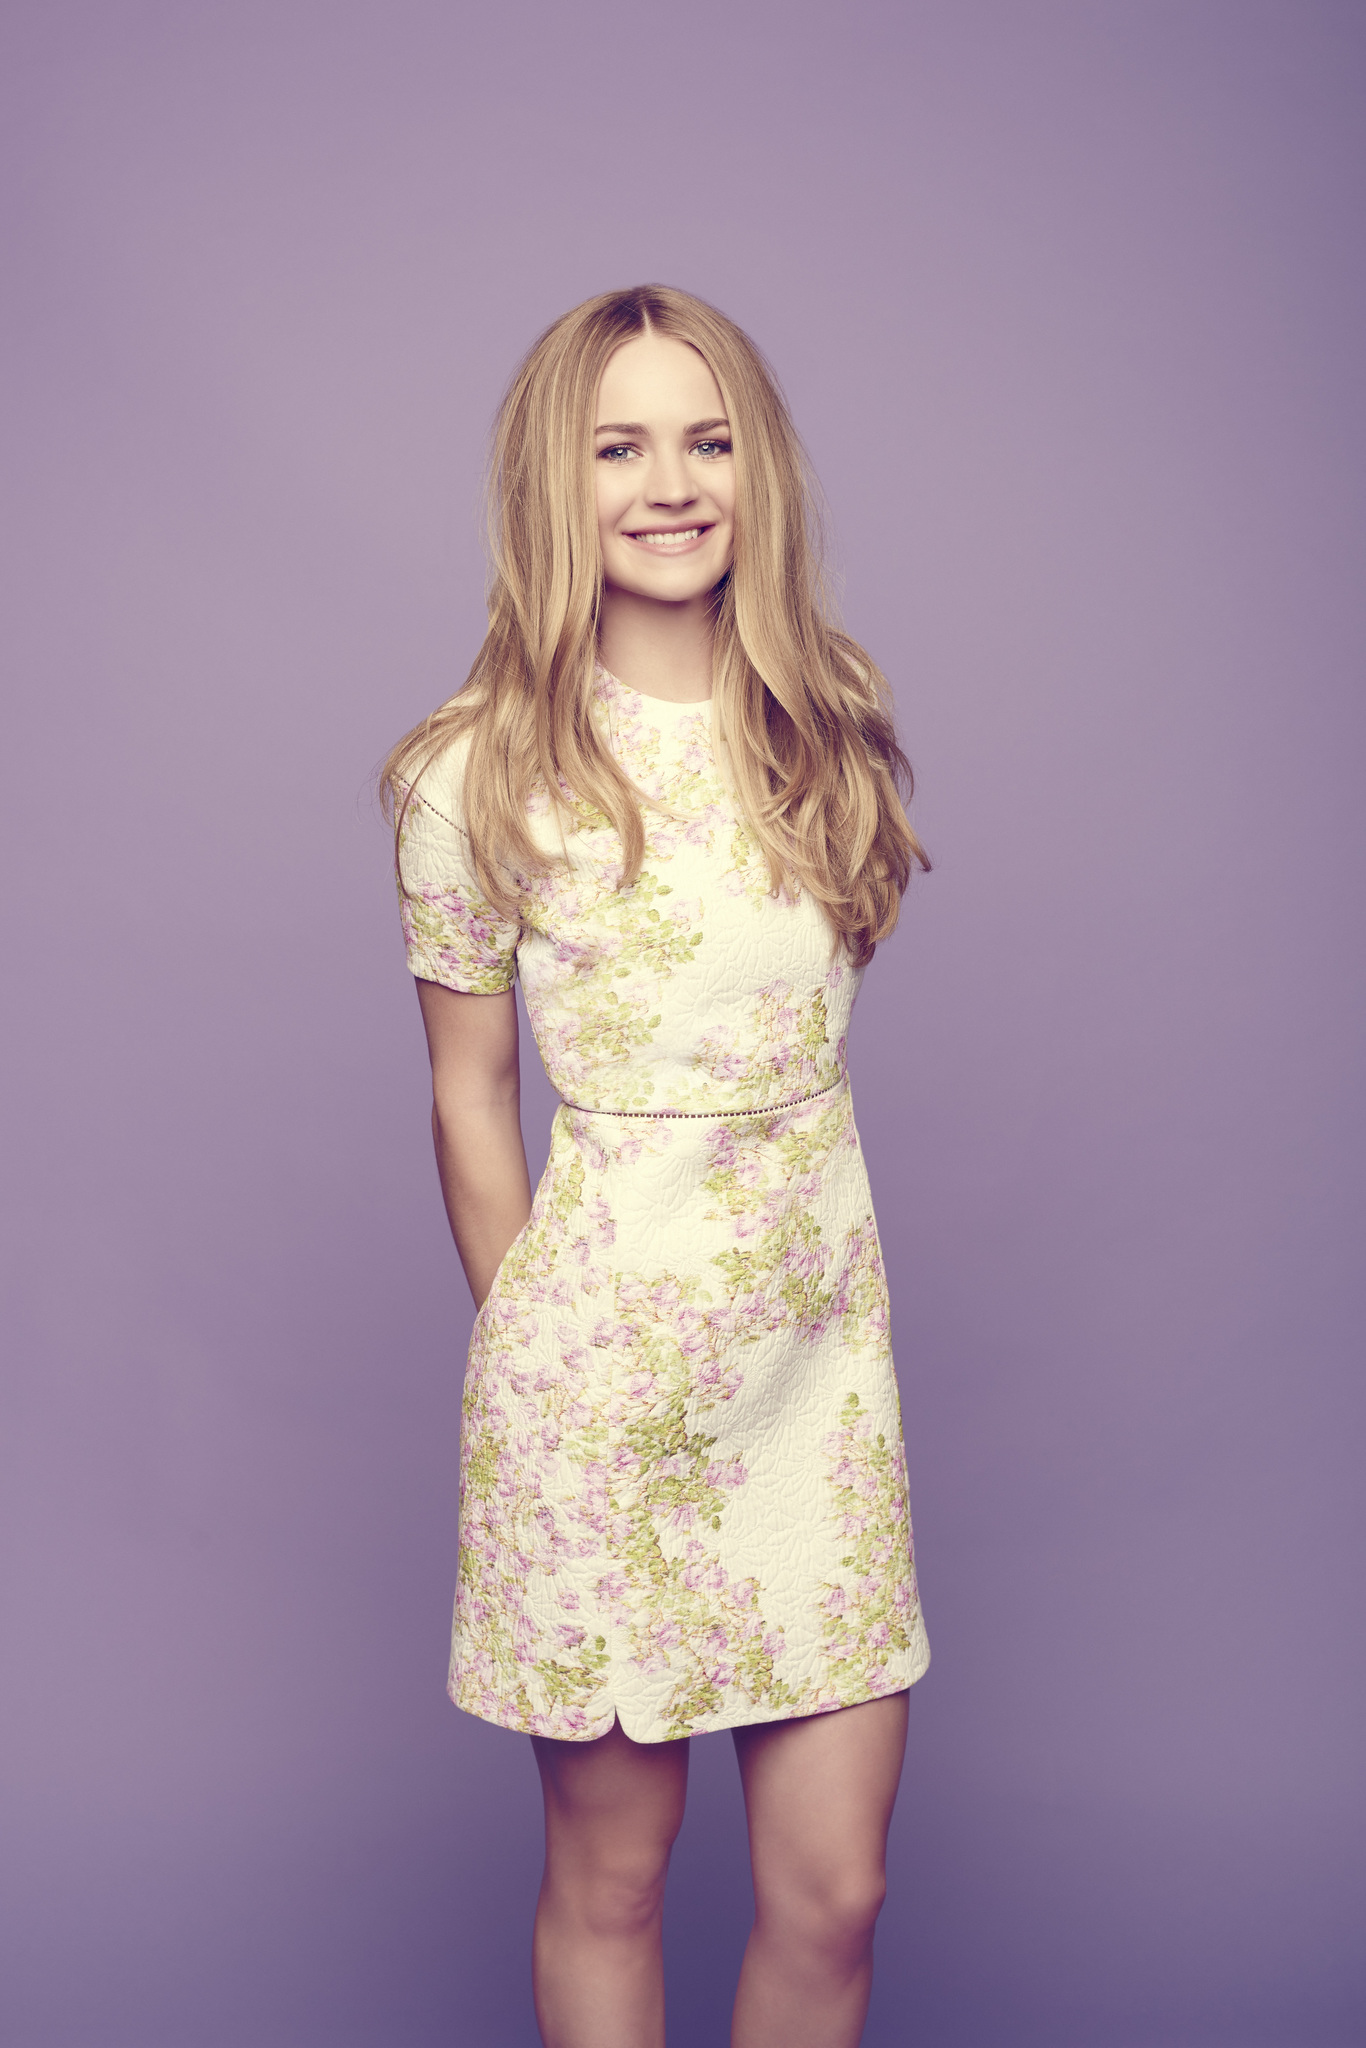 Fotos Britt Robertson naked (74 images), Hot